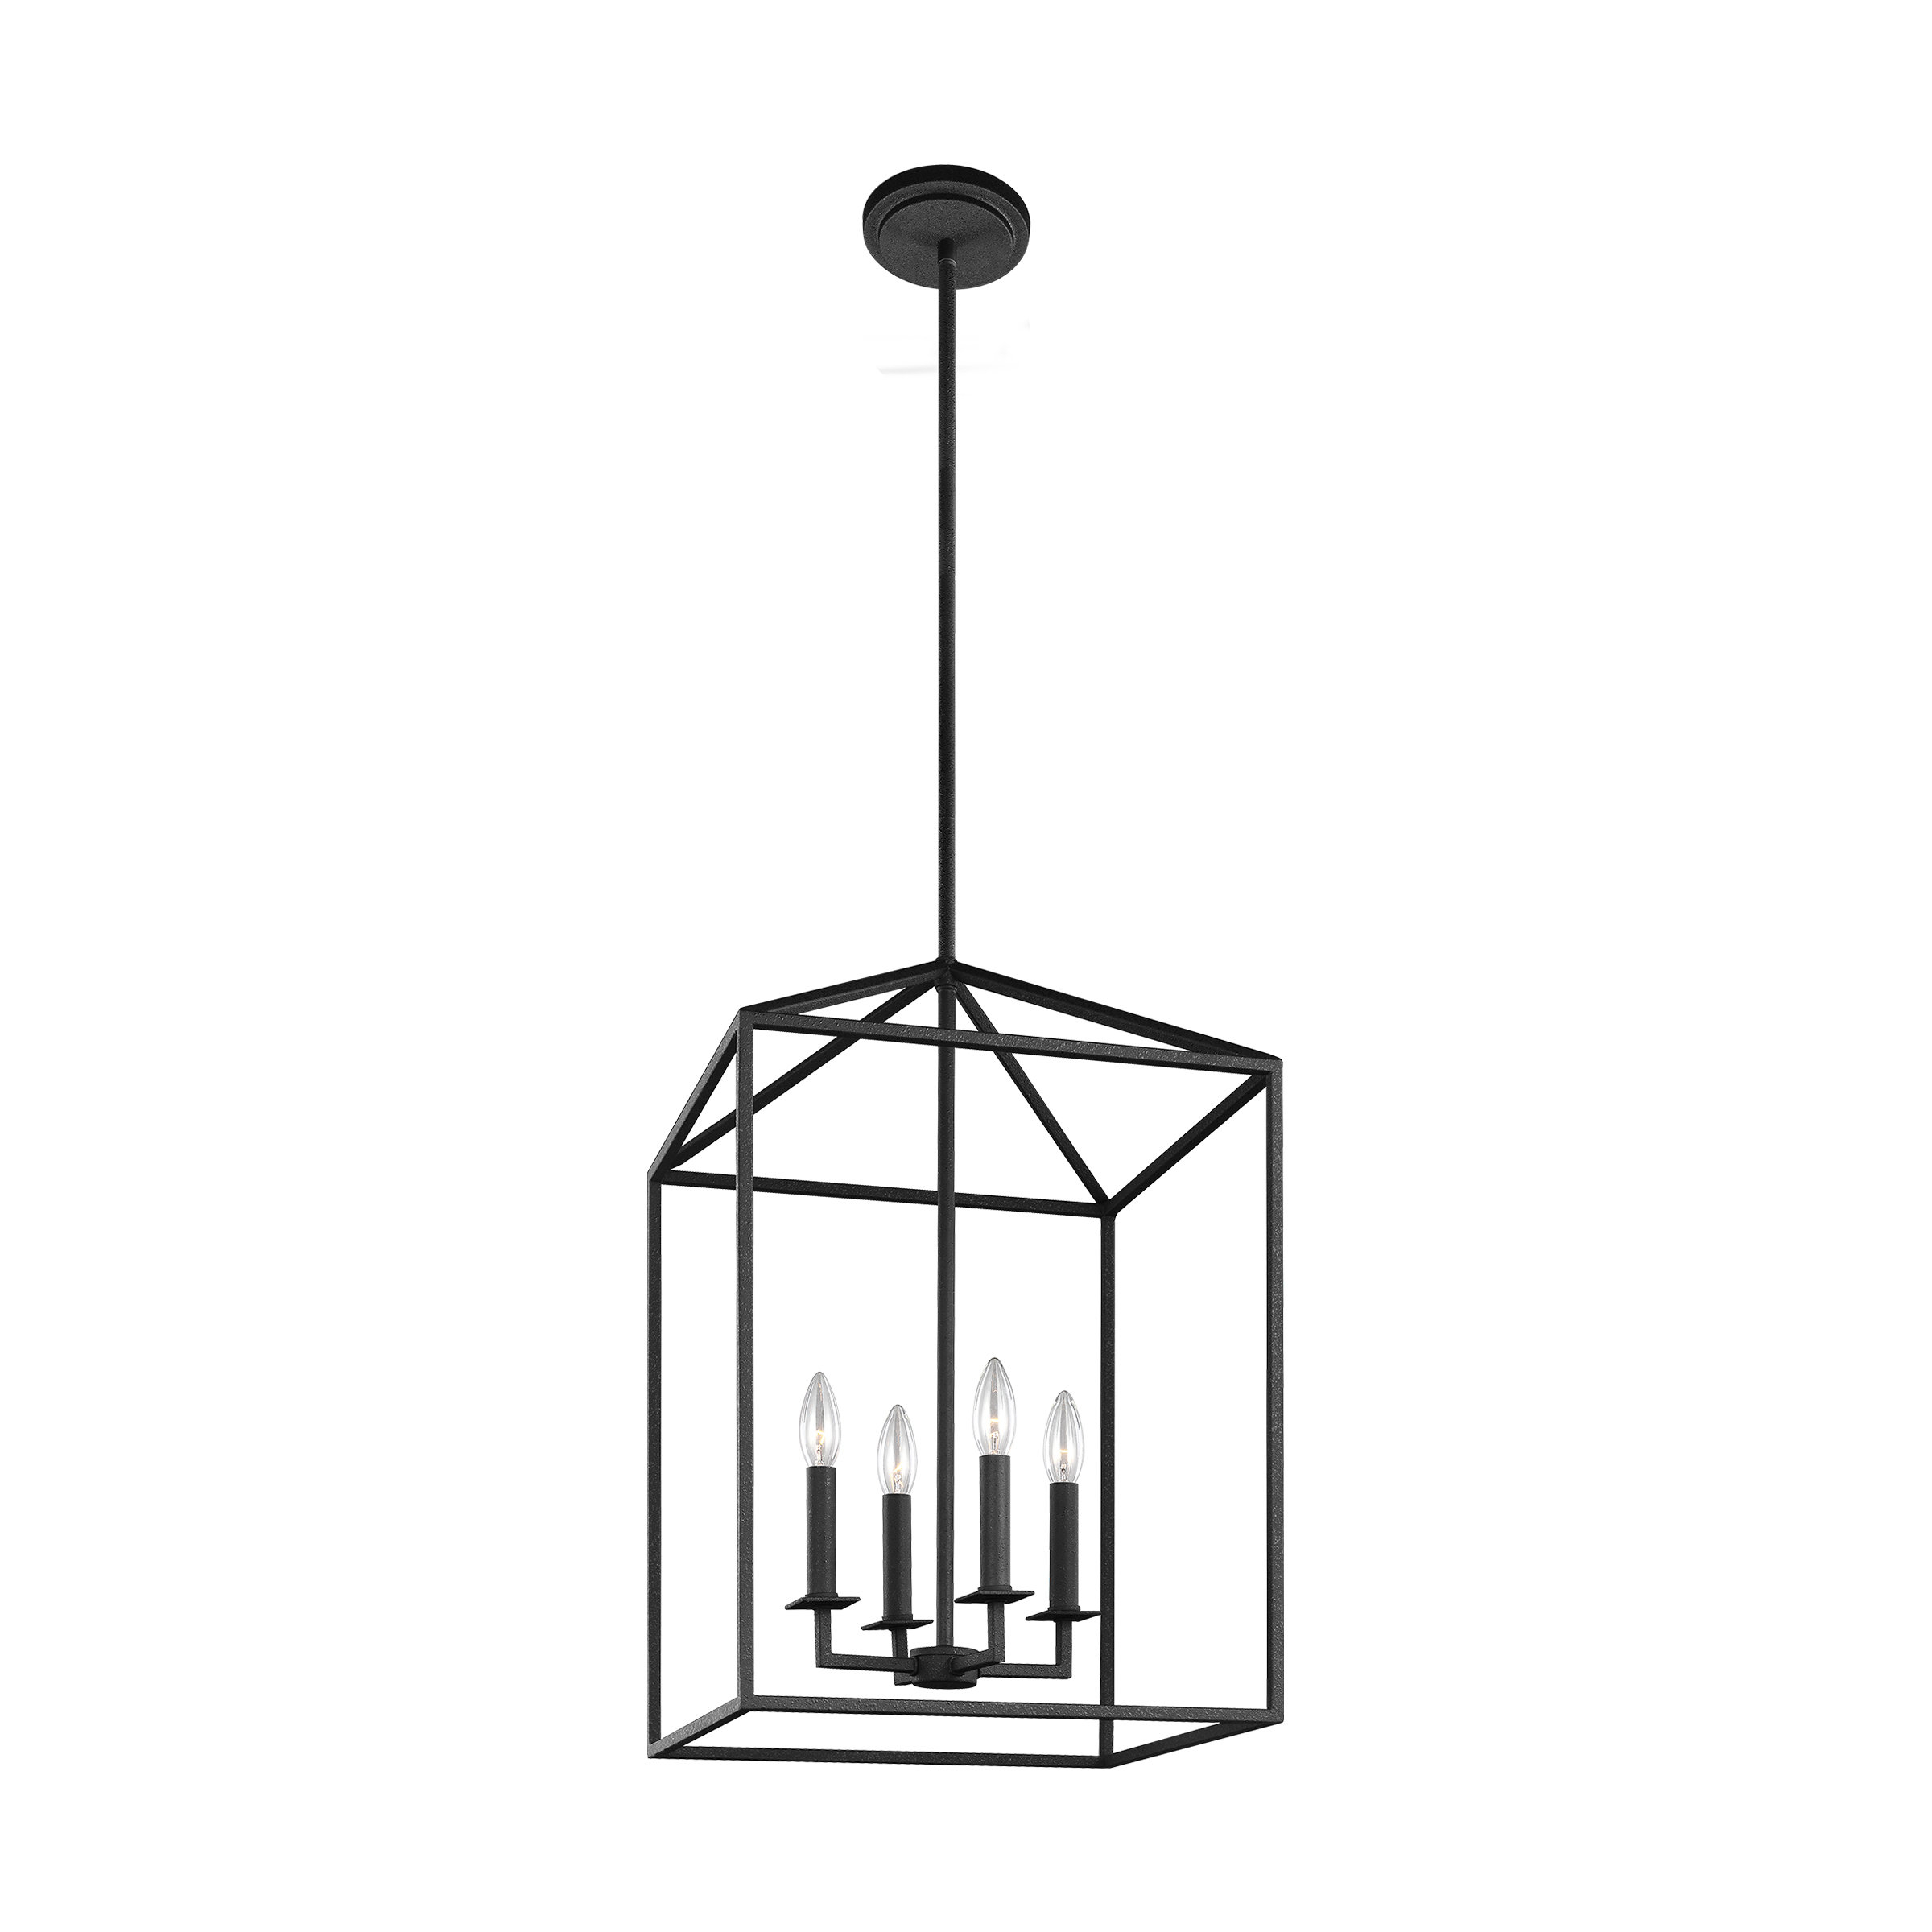 Odie 4 Light Lantern Square/rectangle Pendant Pertaining To 4 Light Lantern Square / Rectangle Pendants (View 5 of 30)